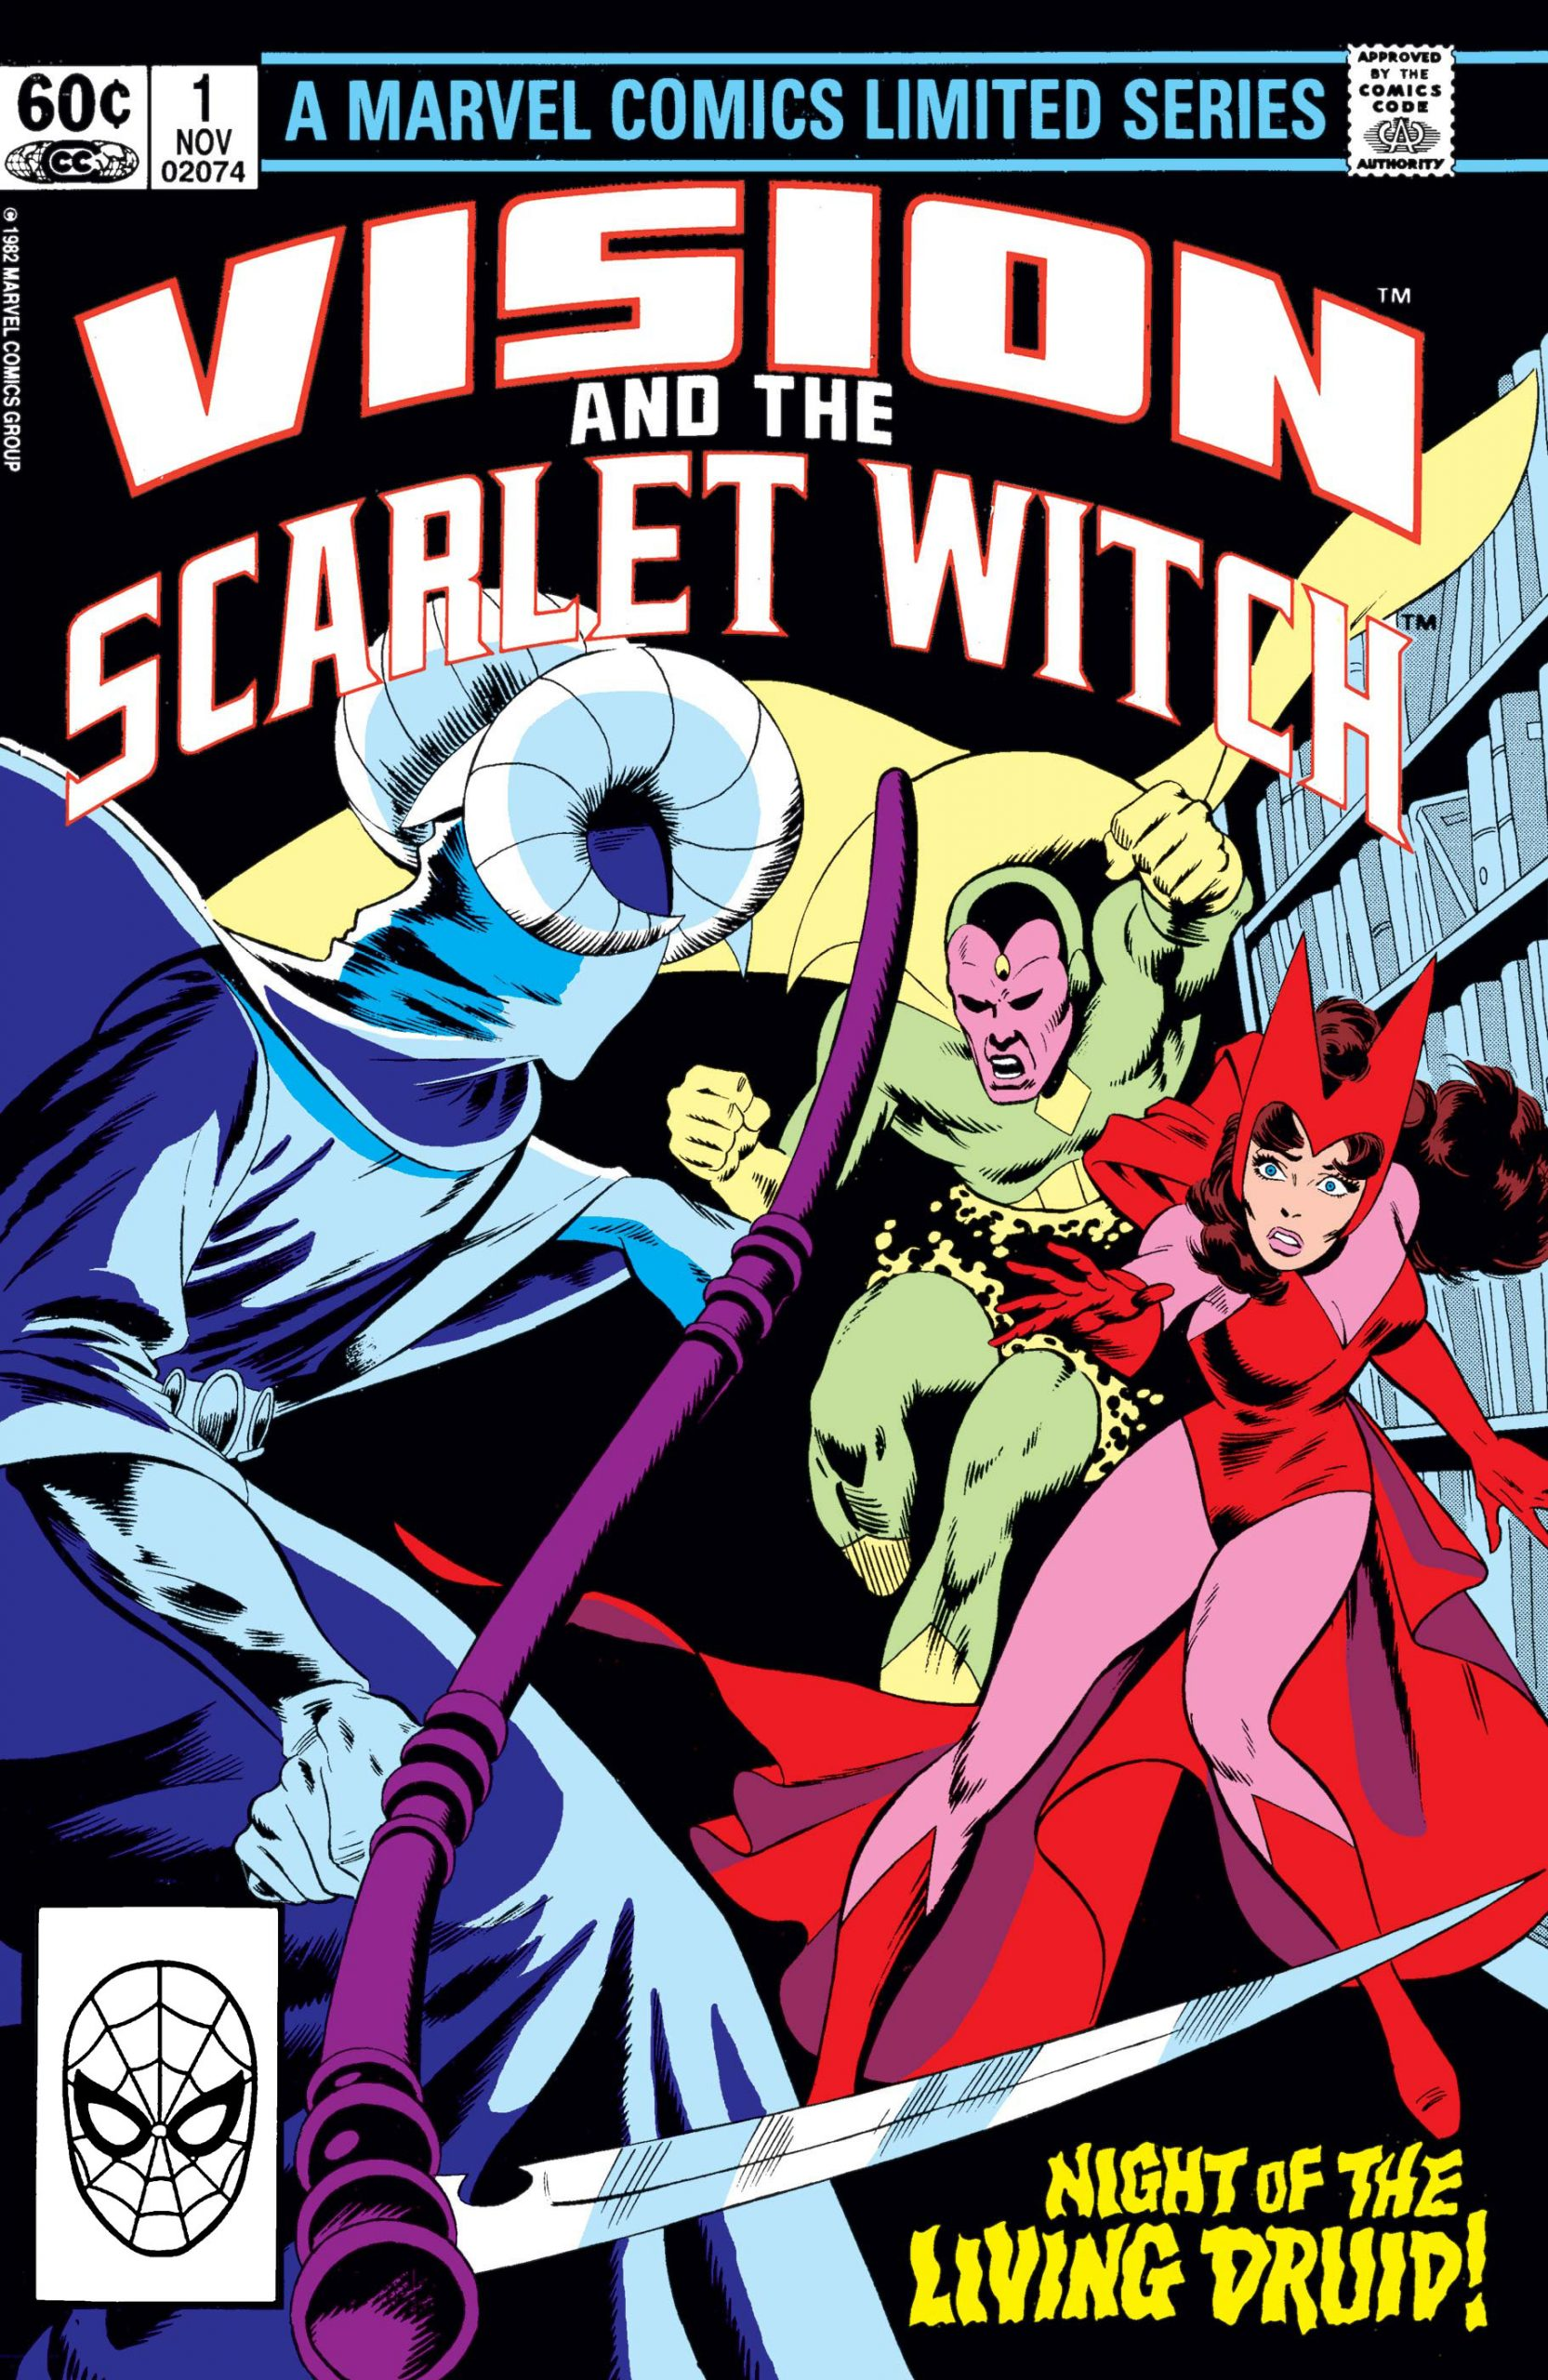 Vision and the Scarlet Witch (1982) #1 and Doctor Strange in the Multiverse of Madness